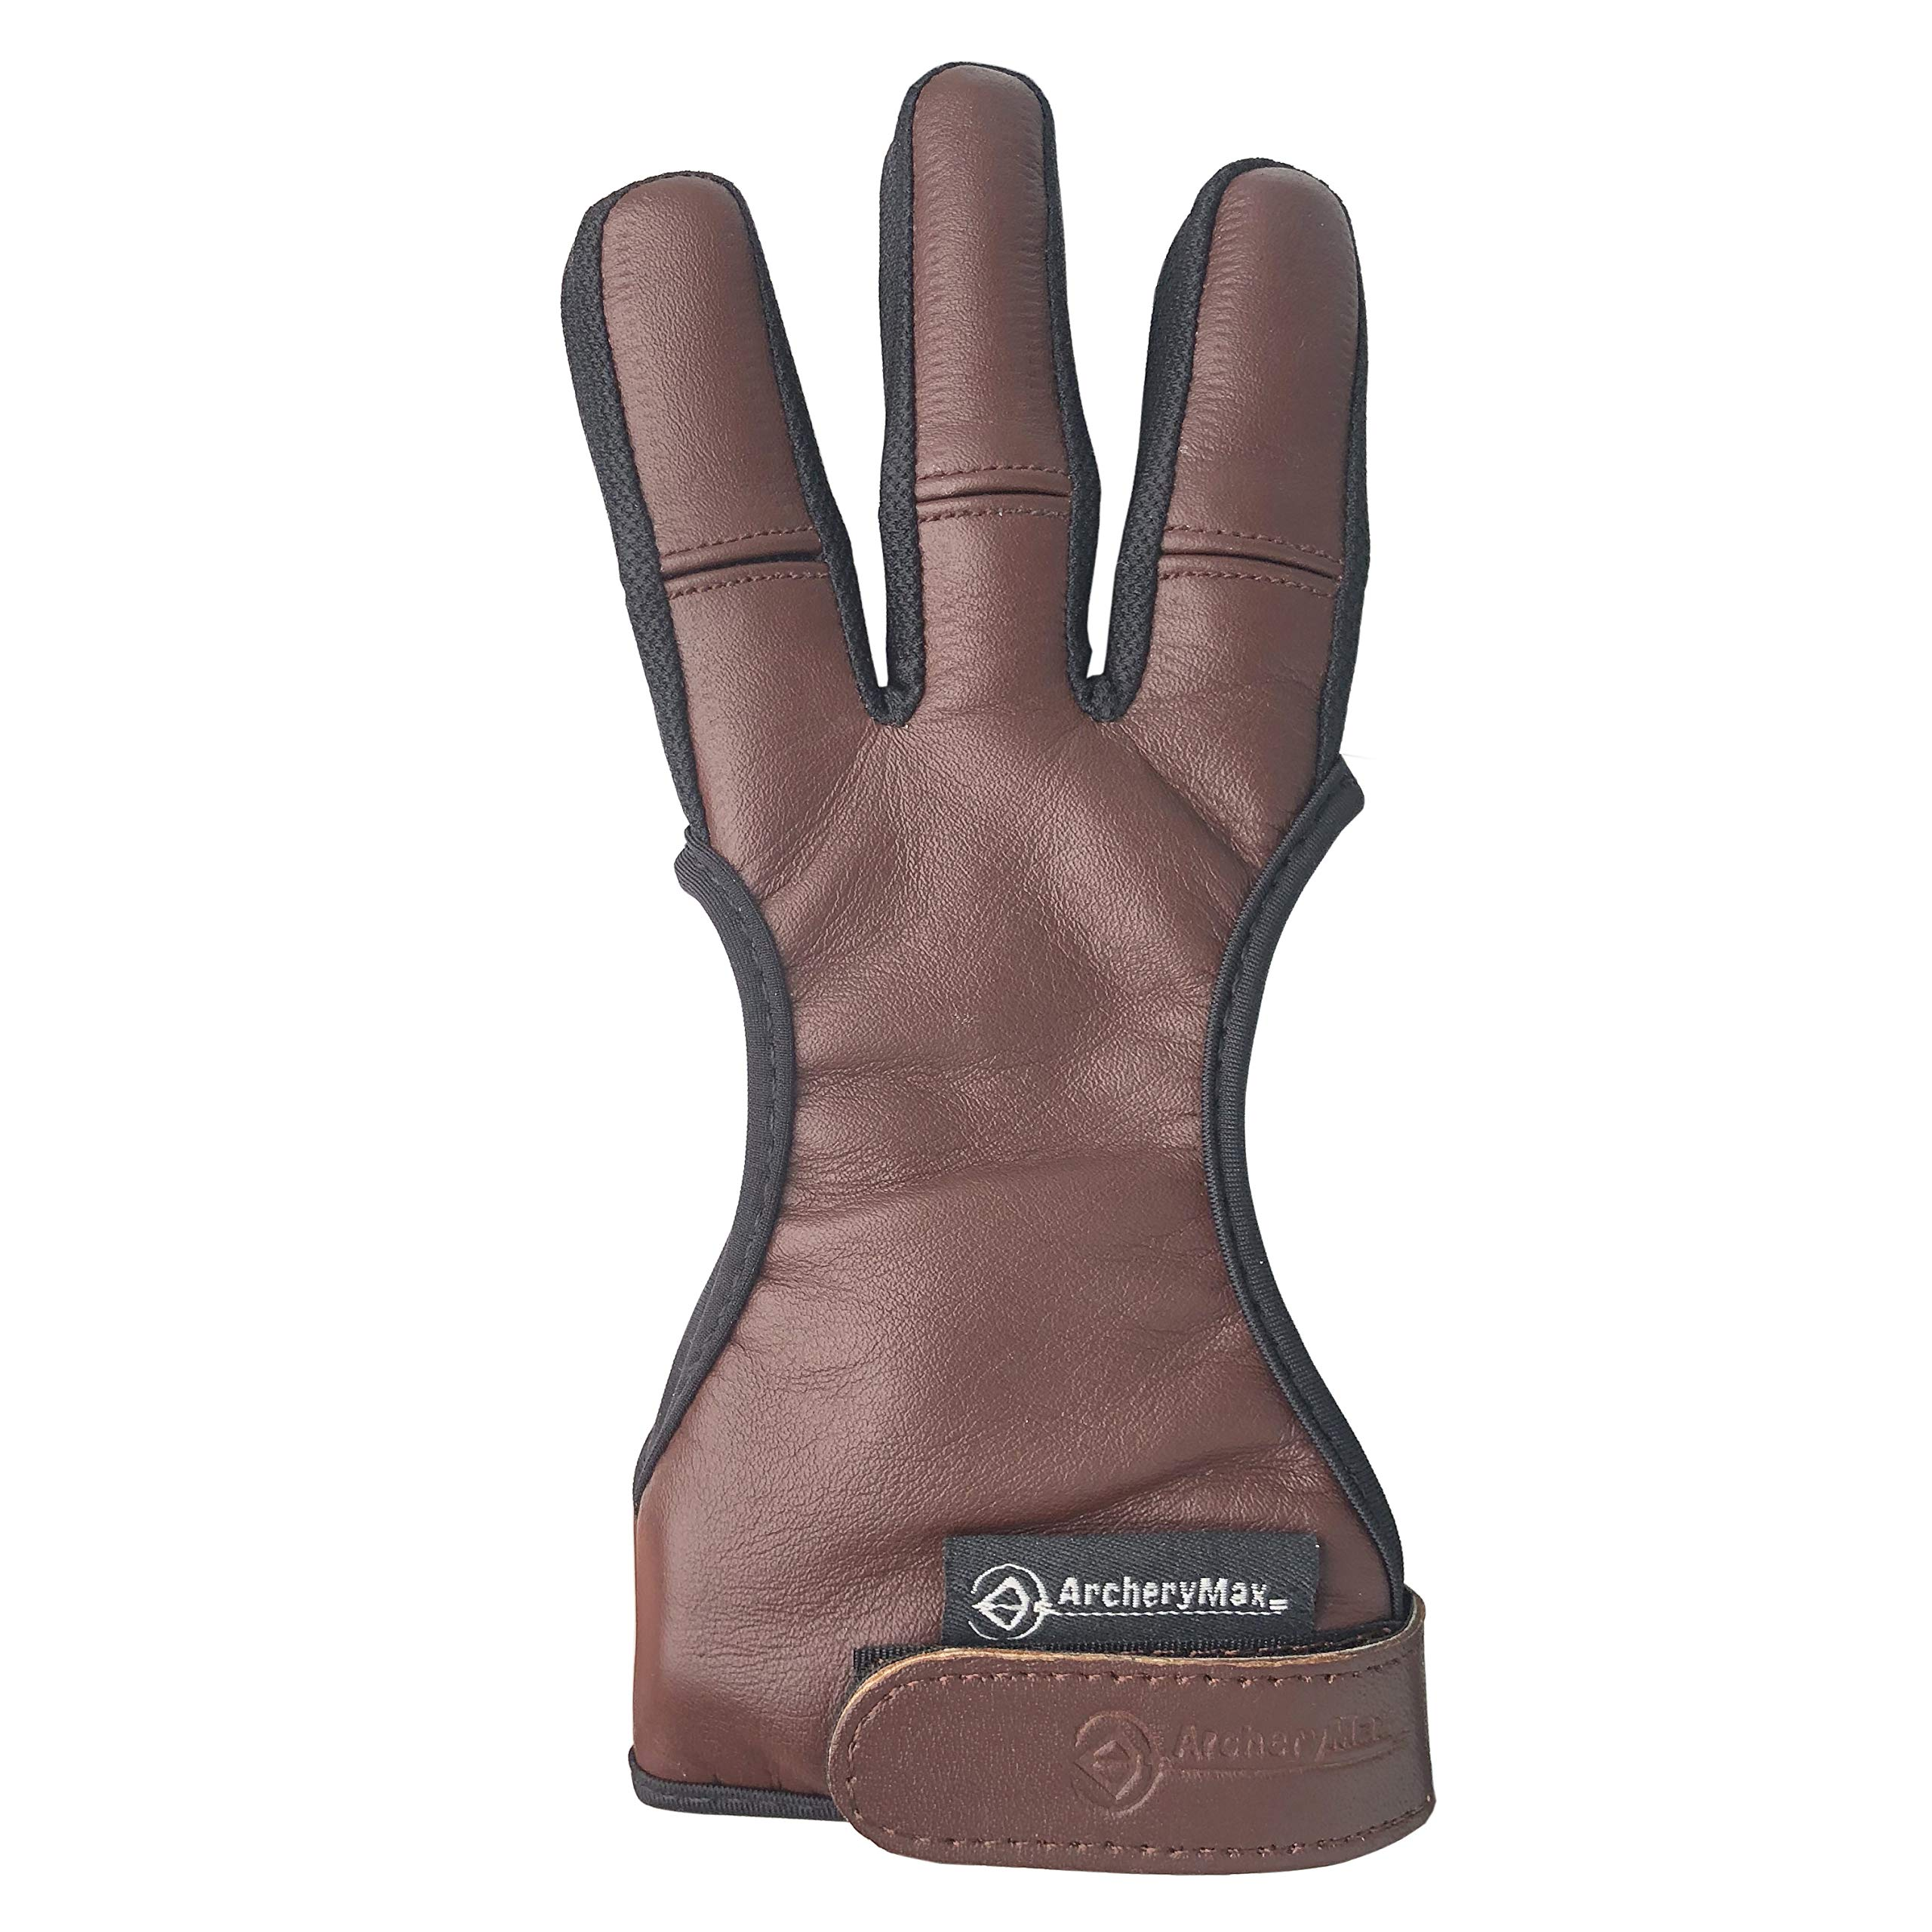 ArcheryMax Handmade Brown Leather Three Finger Archery Gloves (Dark Brown, Small) by ArcheryMax